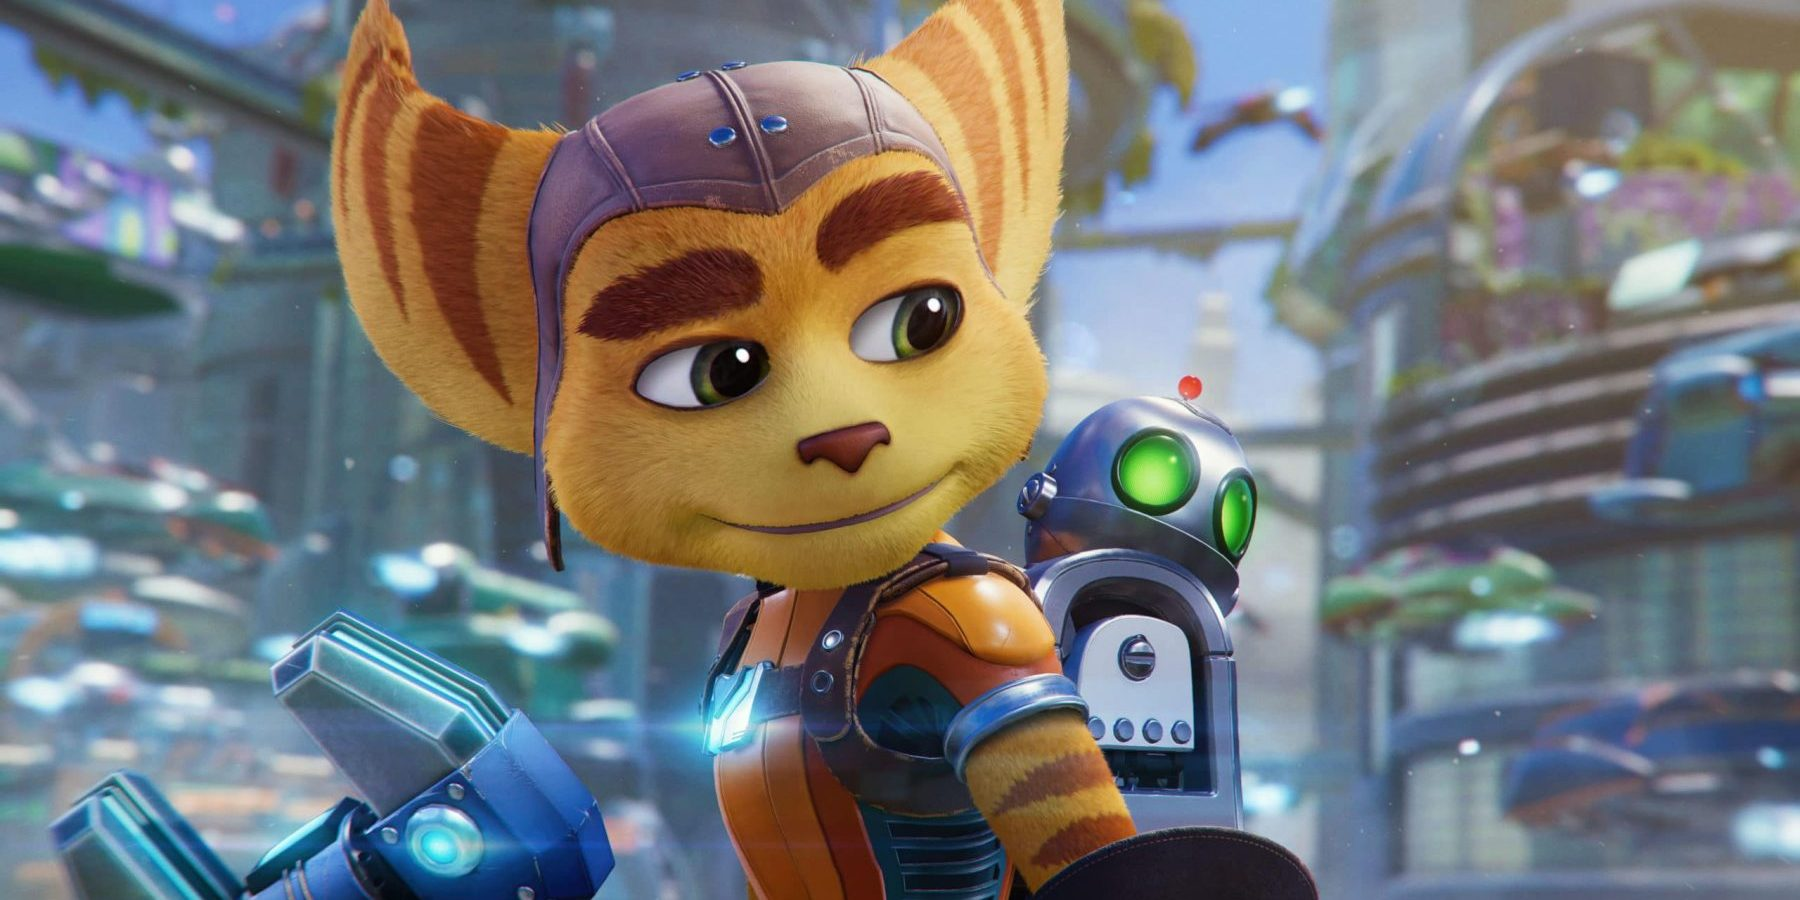 [Keywords] Ratchet and Clank and Continuity